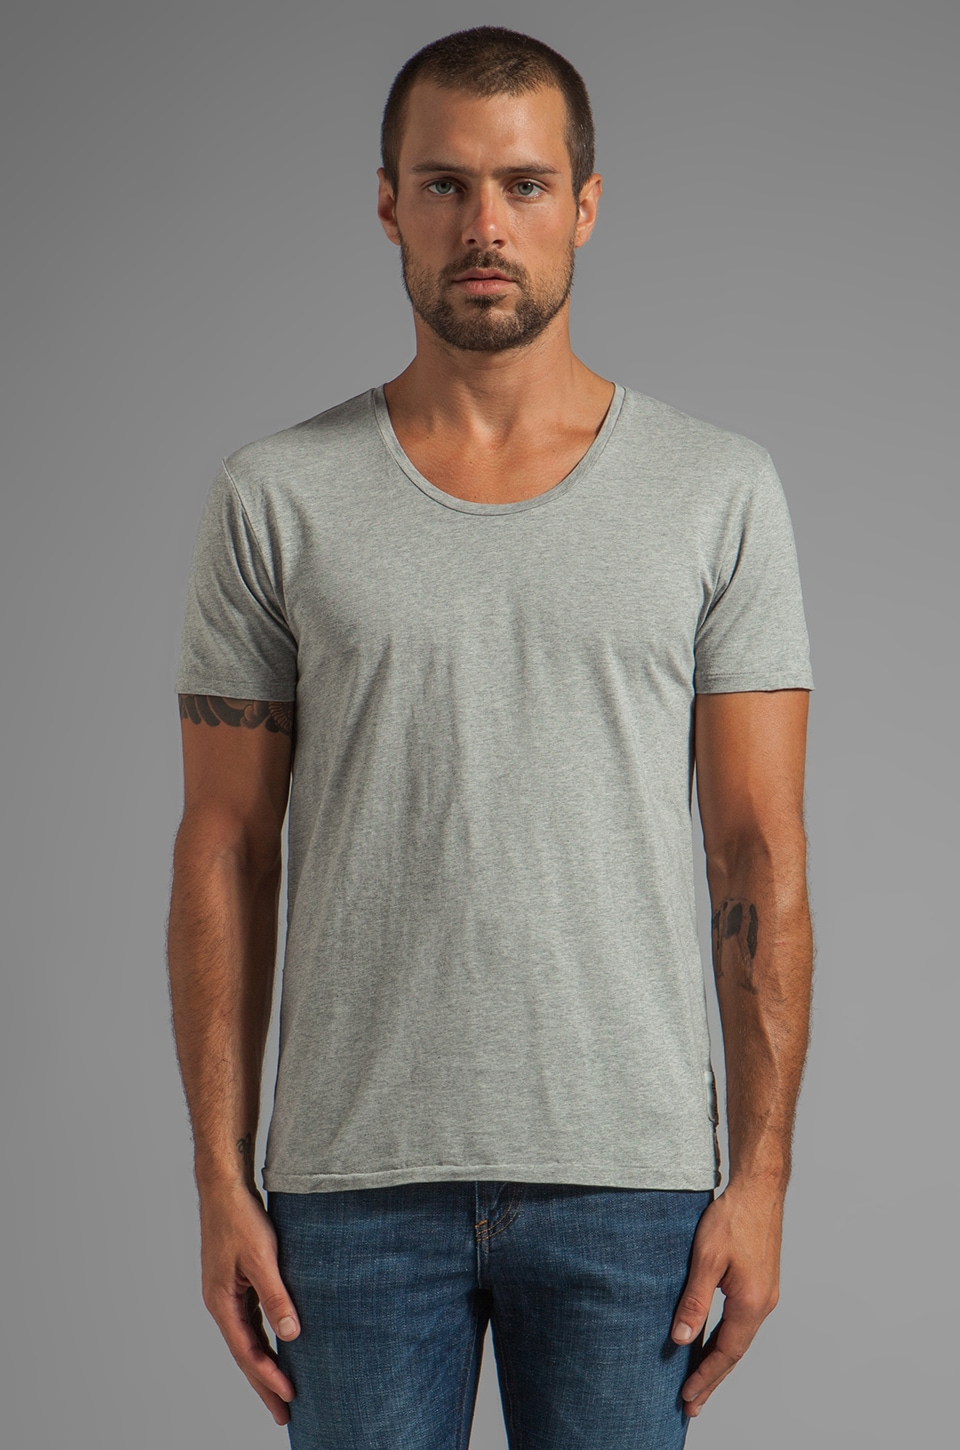 Scotch & Soda Home Alone Crew Tee in Grey